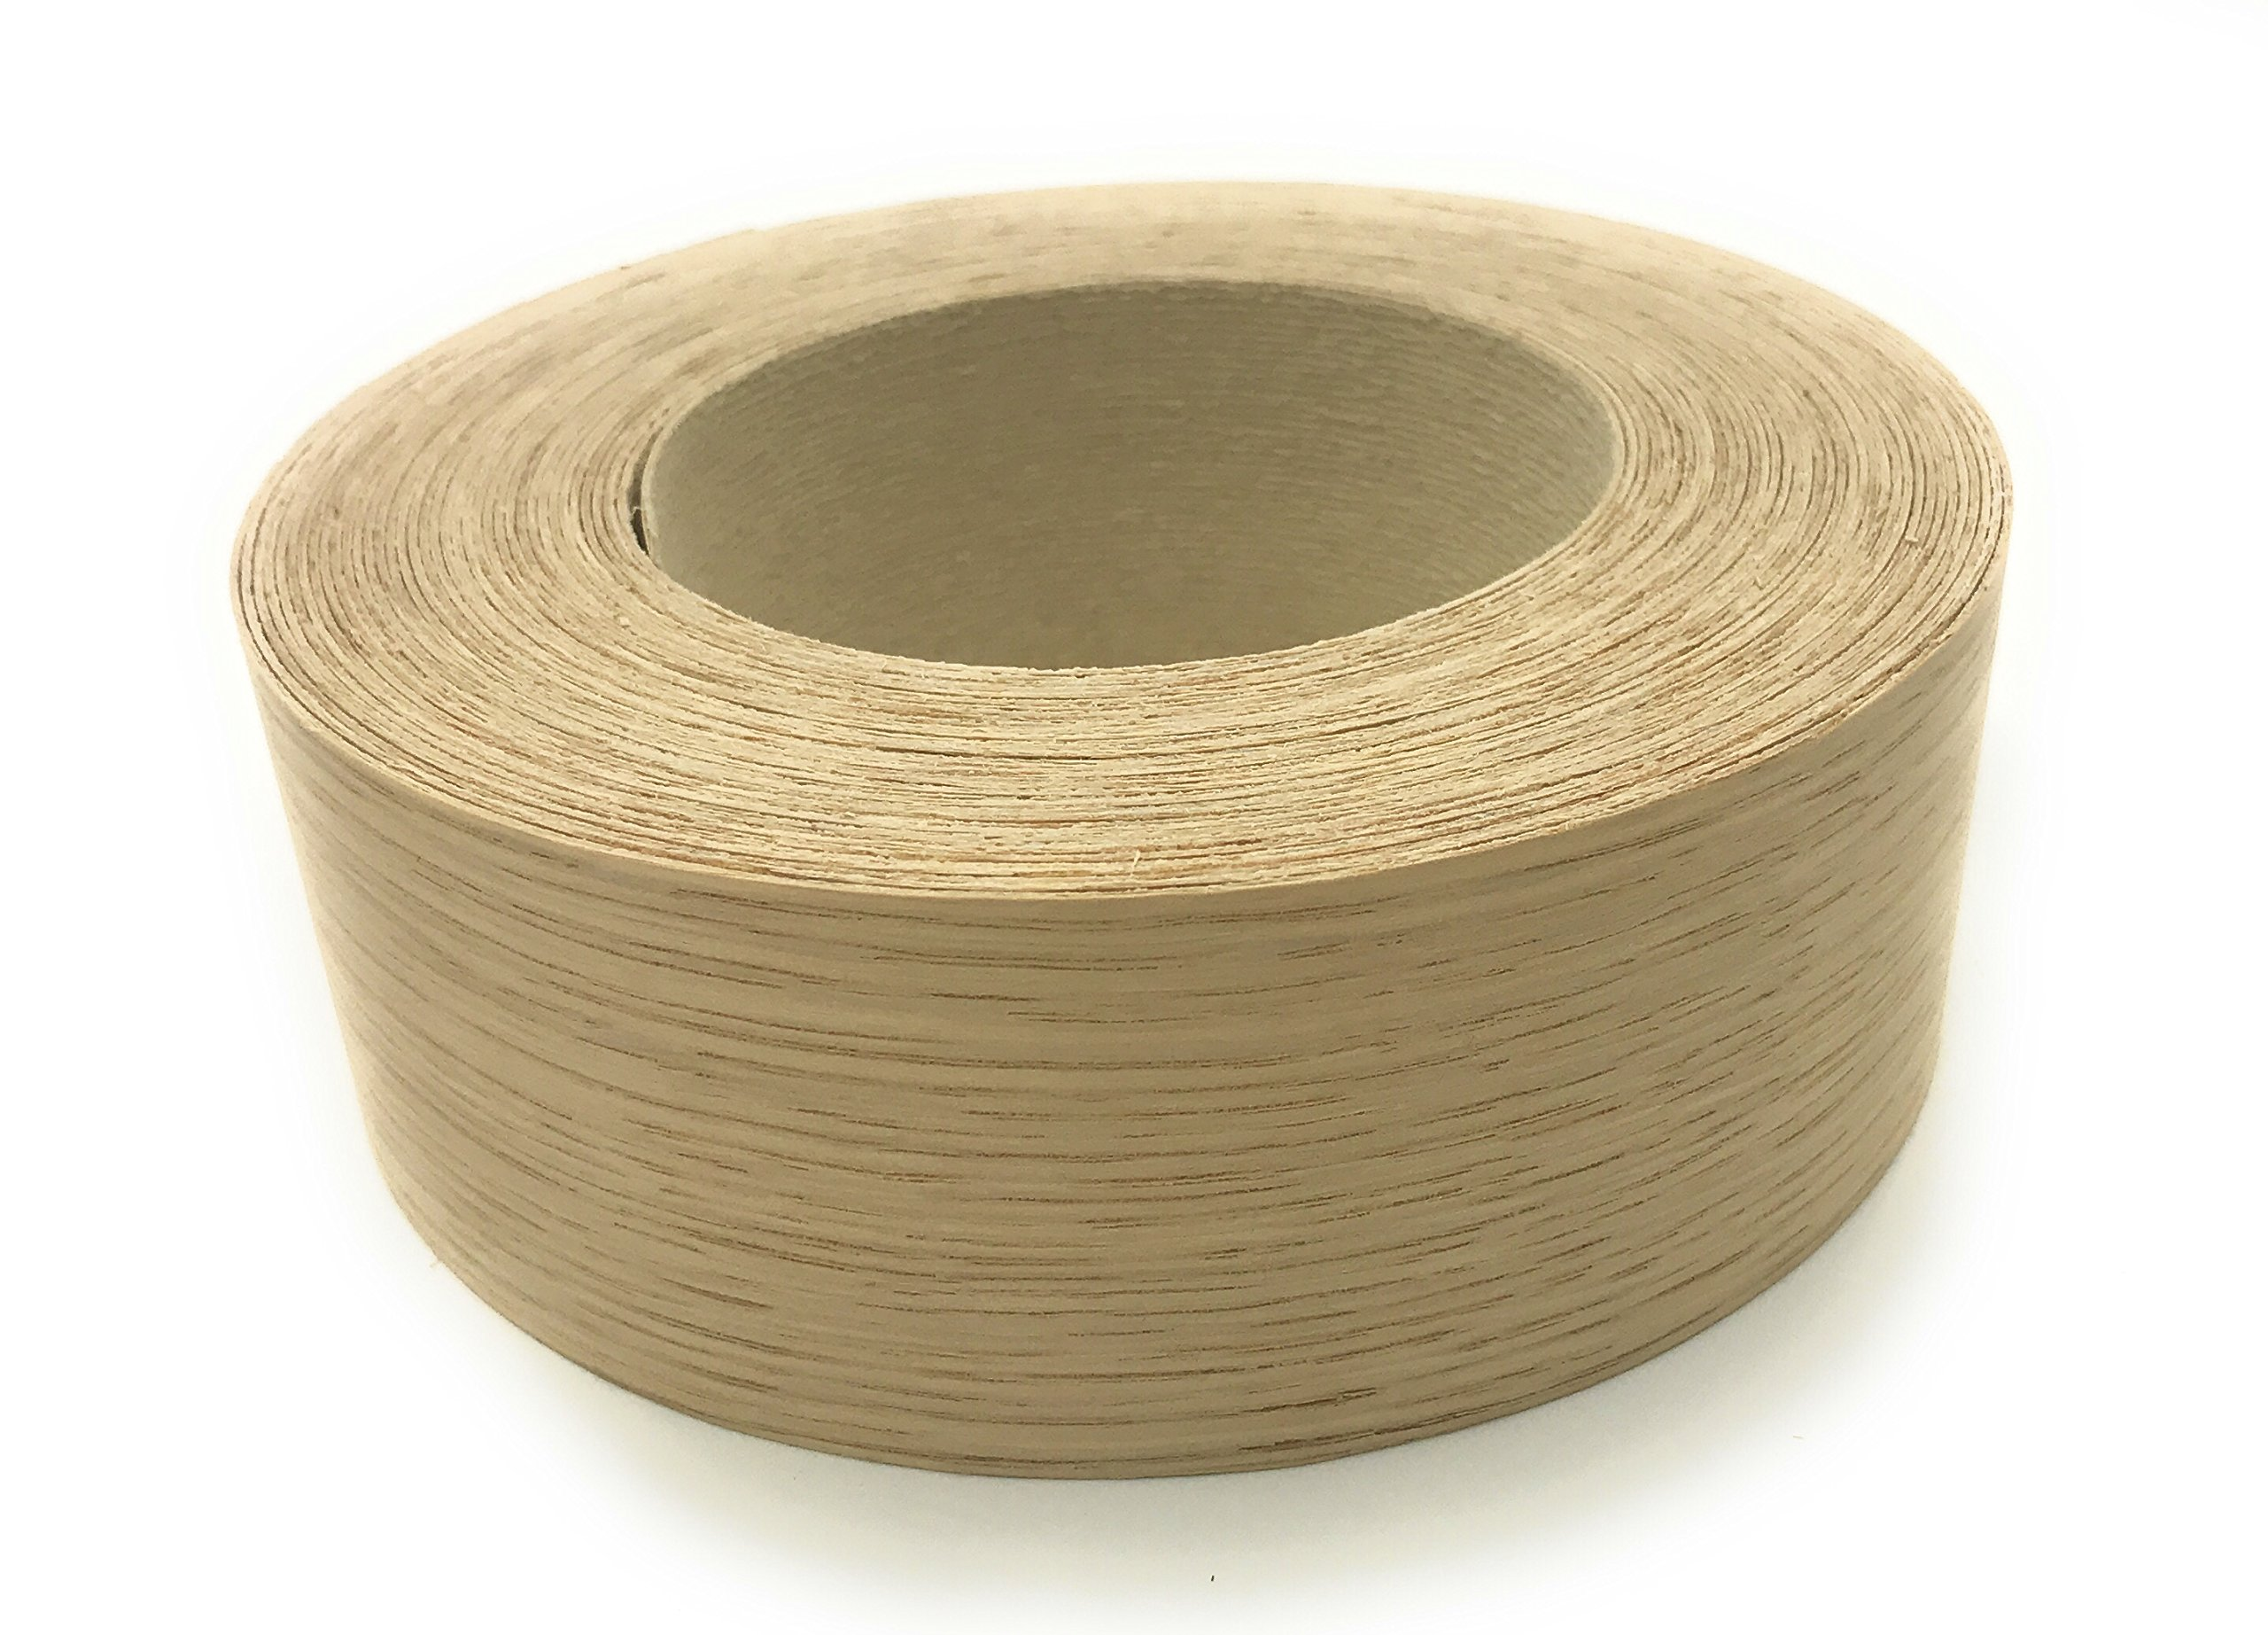 Edge Supply Brand White Oak 2'' x 50' Roll Preglued, Wood Veneer Edge Banding, Iron on with Hot Melt Adhesive, Flexible Wood Tape Sanded to Perfection. Easy Application Wood Edging, Made in USA. by Edge Supply